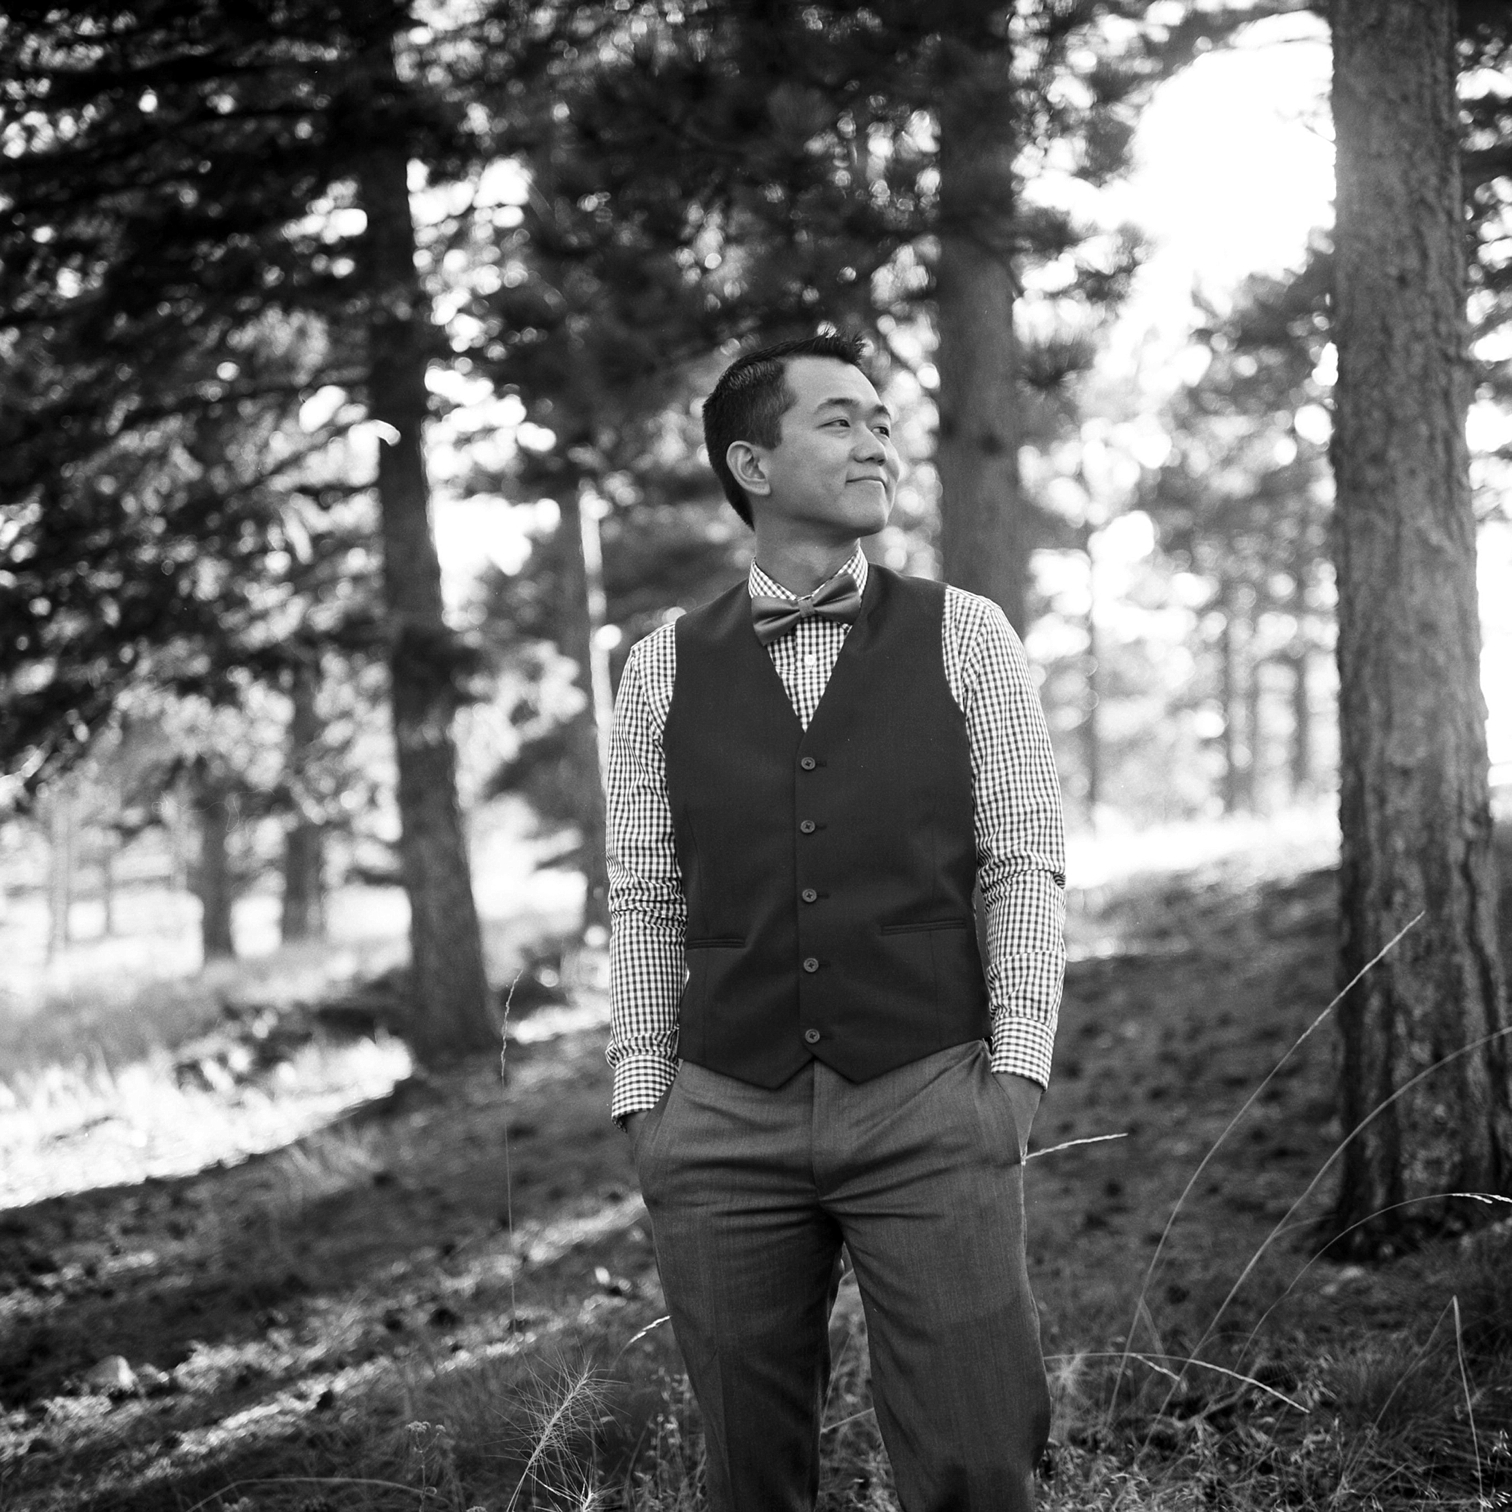 Groom In Woods, Sunrise Amphitheater, Colorado Photographers, Best Destination Weddings, Danielle DeFiore Photography